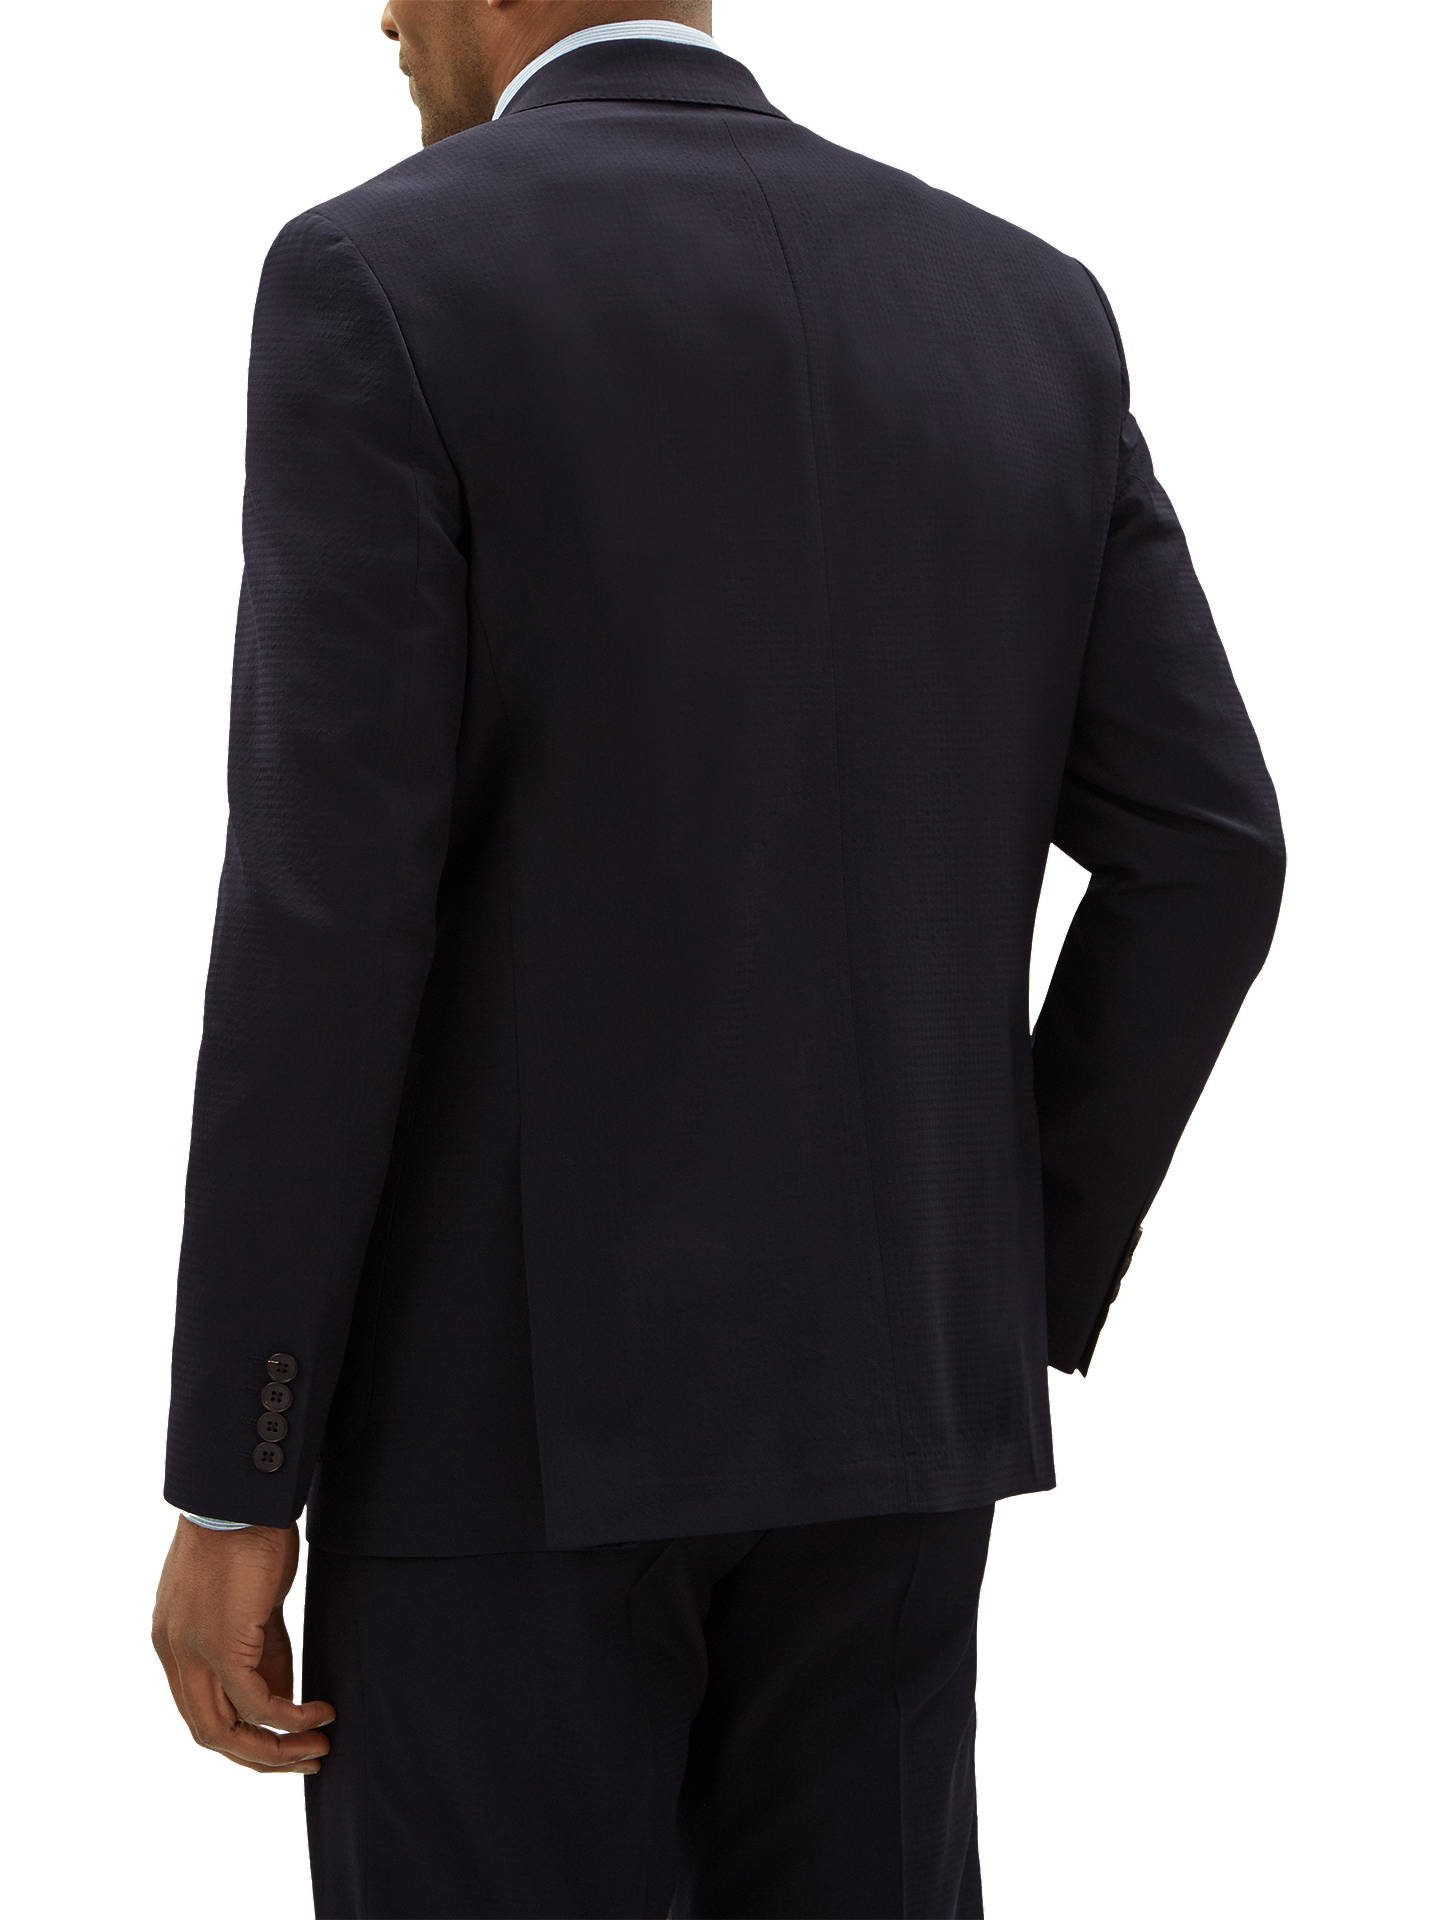 Buy Jaeger Textured Seersucker Regular Fit Suit Jacket, Navy, 38S Online at johnlewis.com